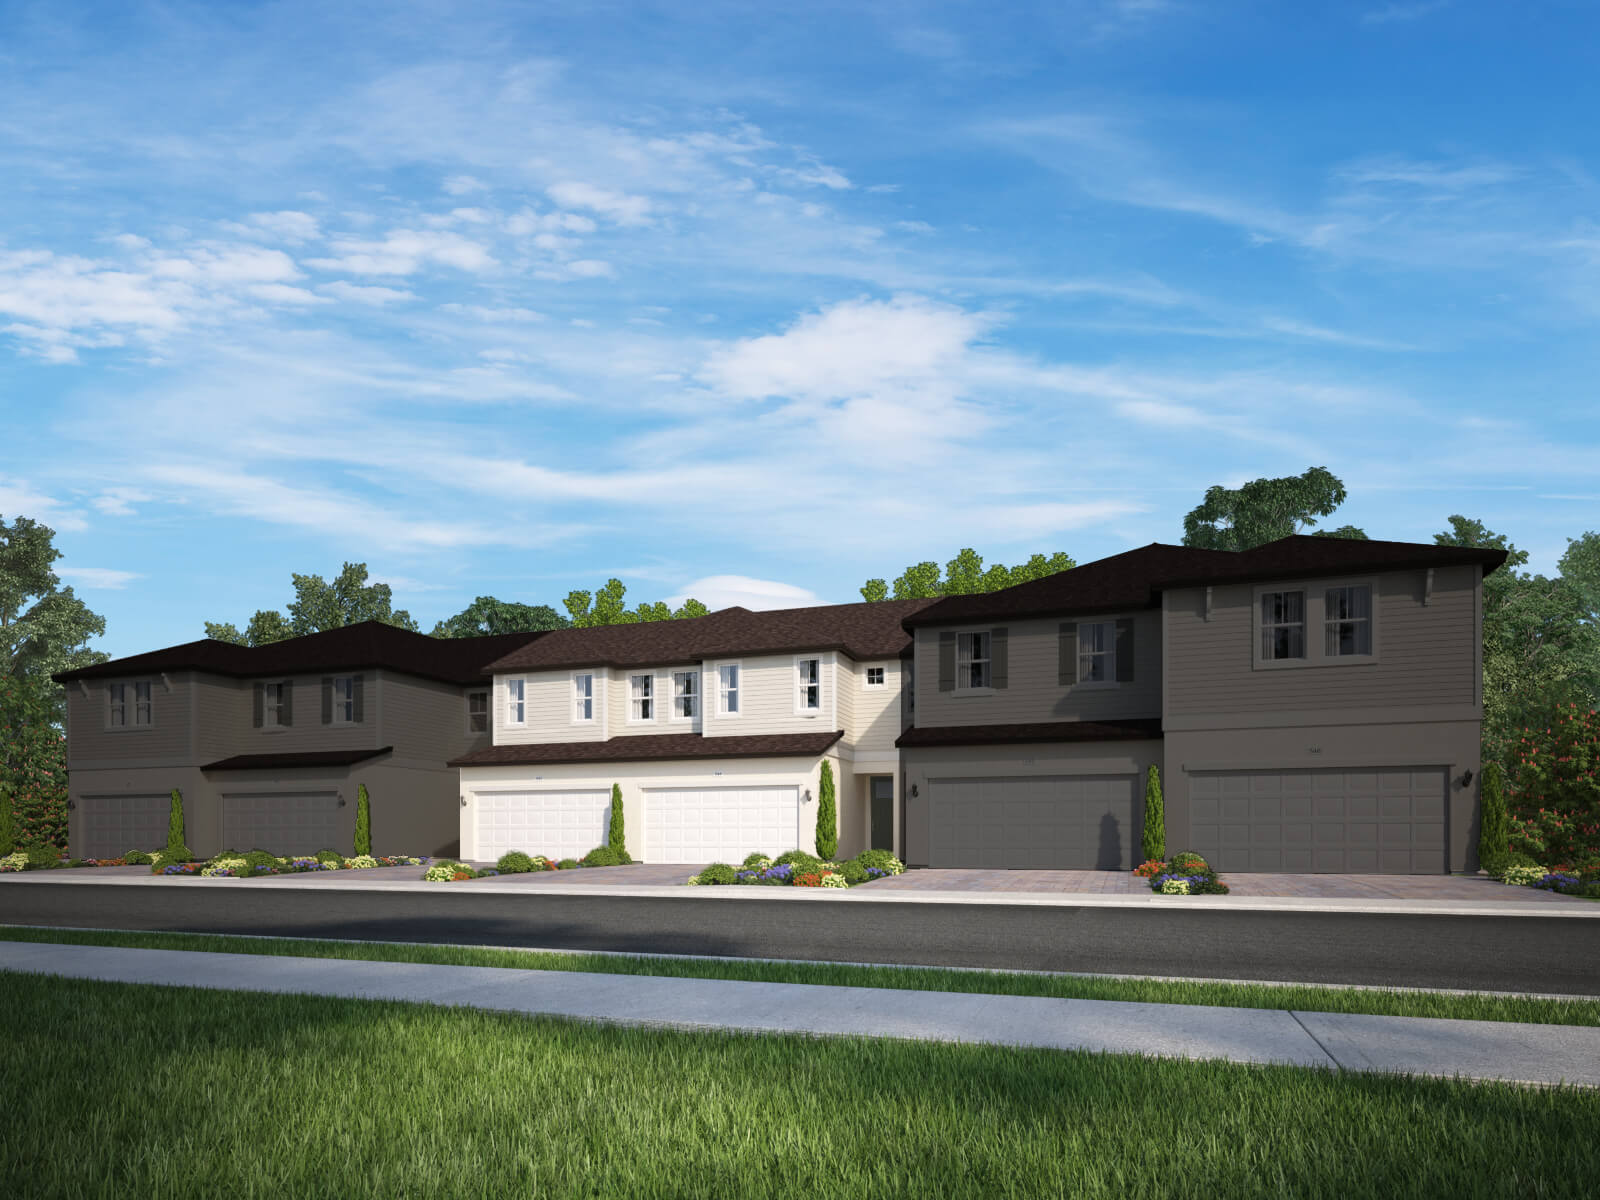 Meadow woods 6 plex town homes